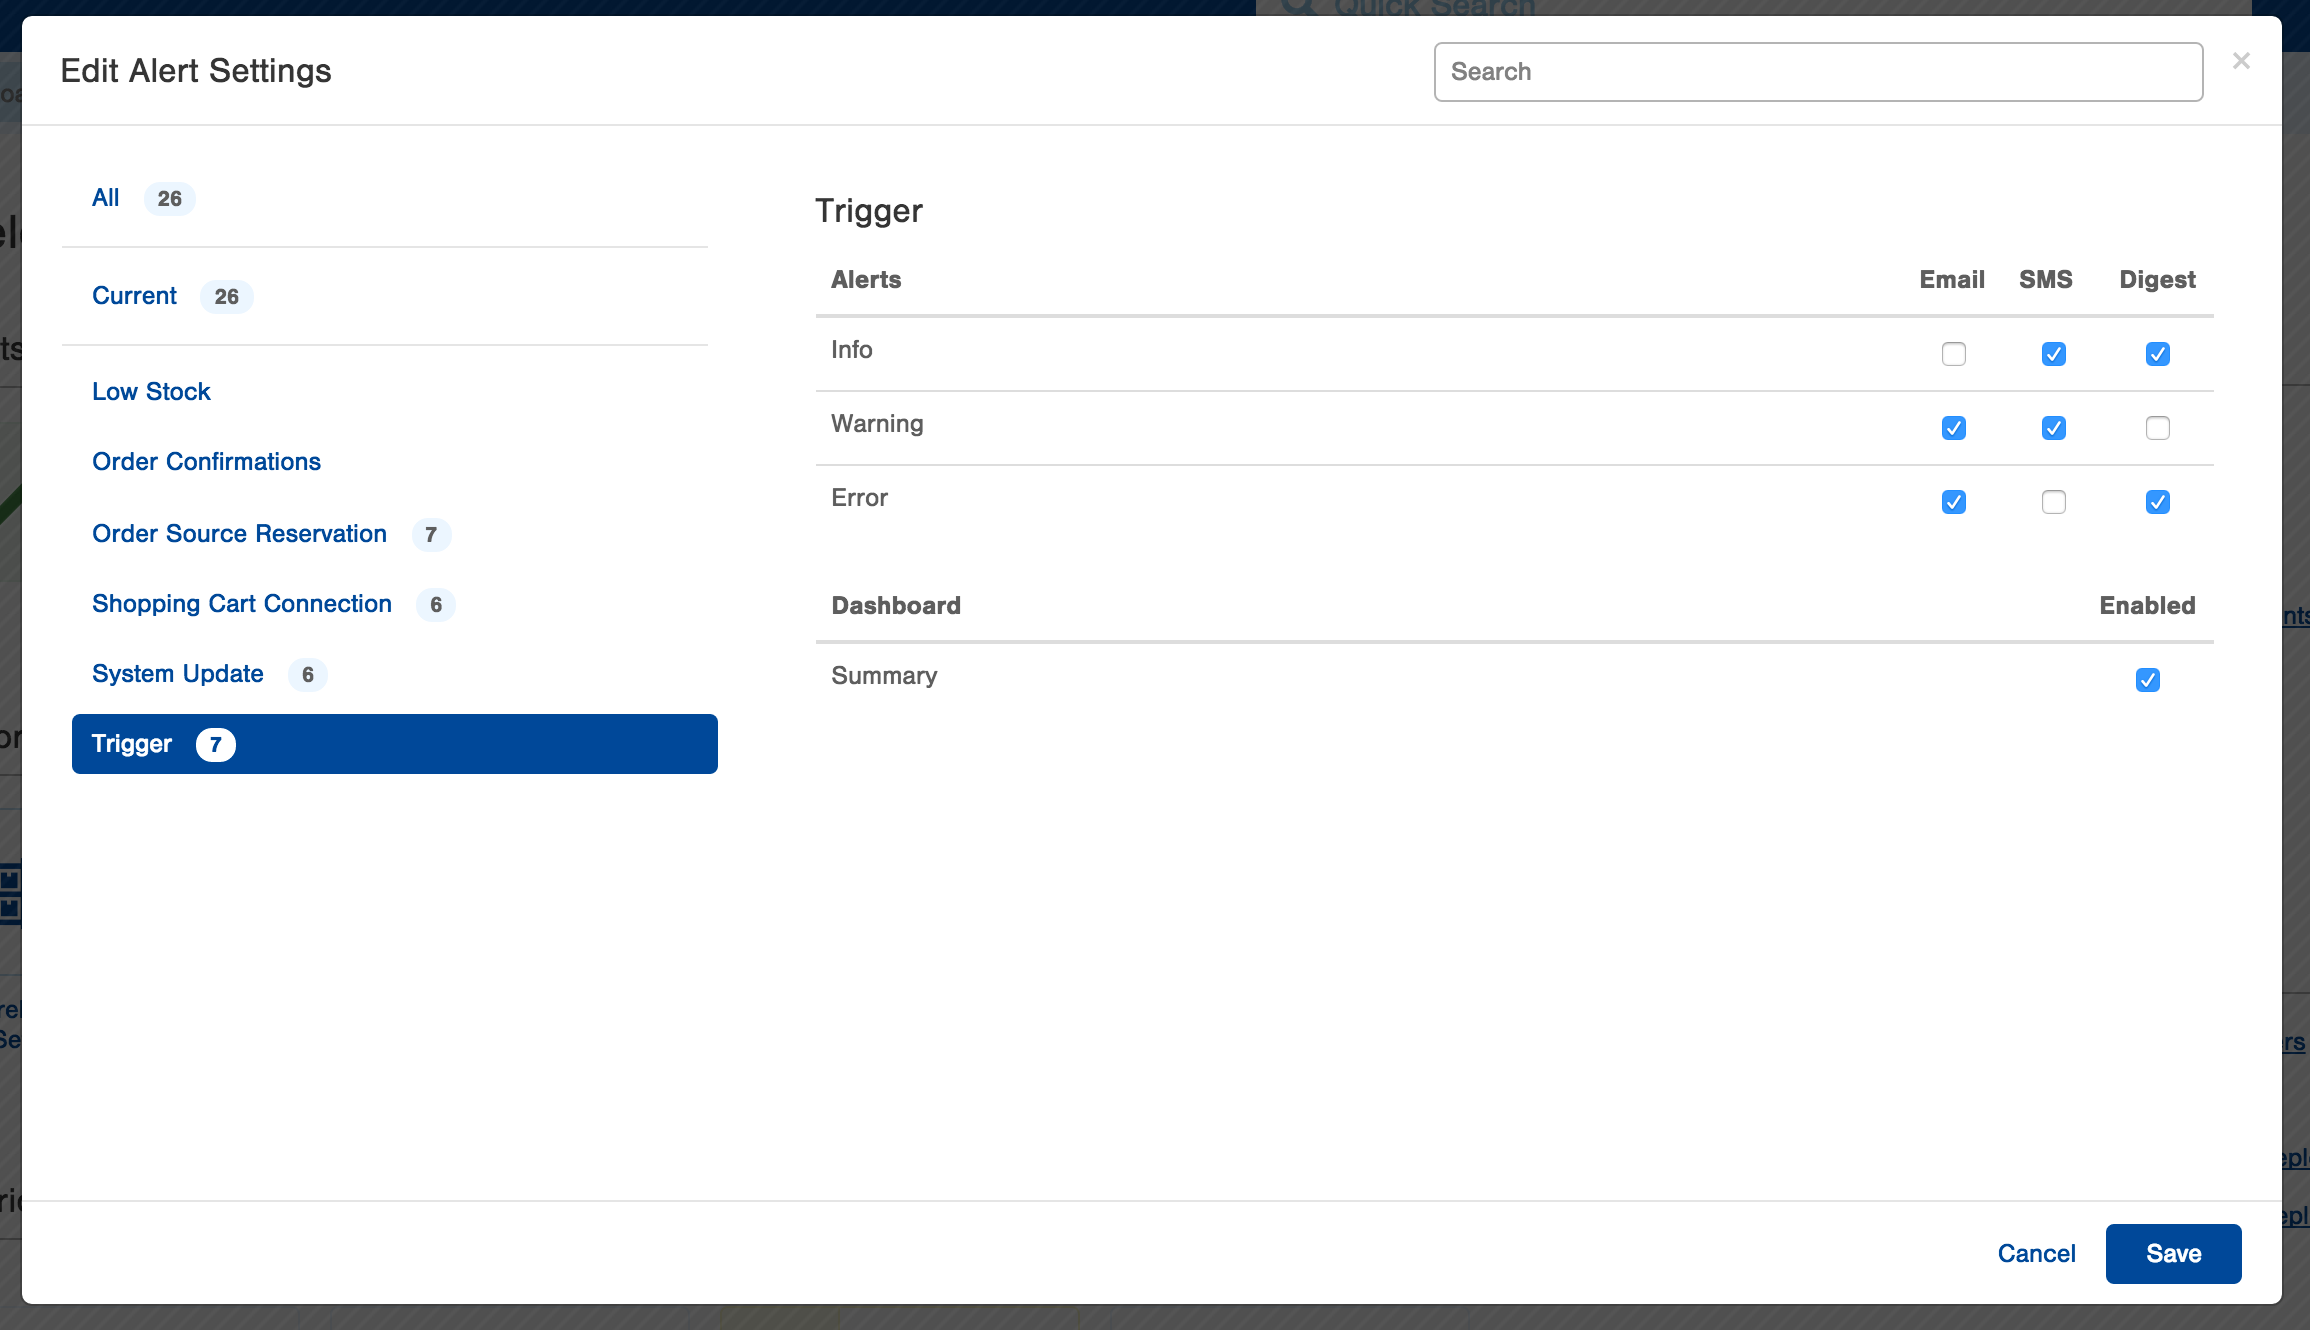 Users can configure event-triggered alerts